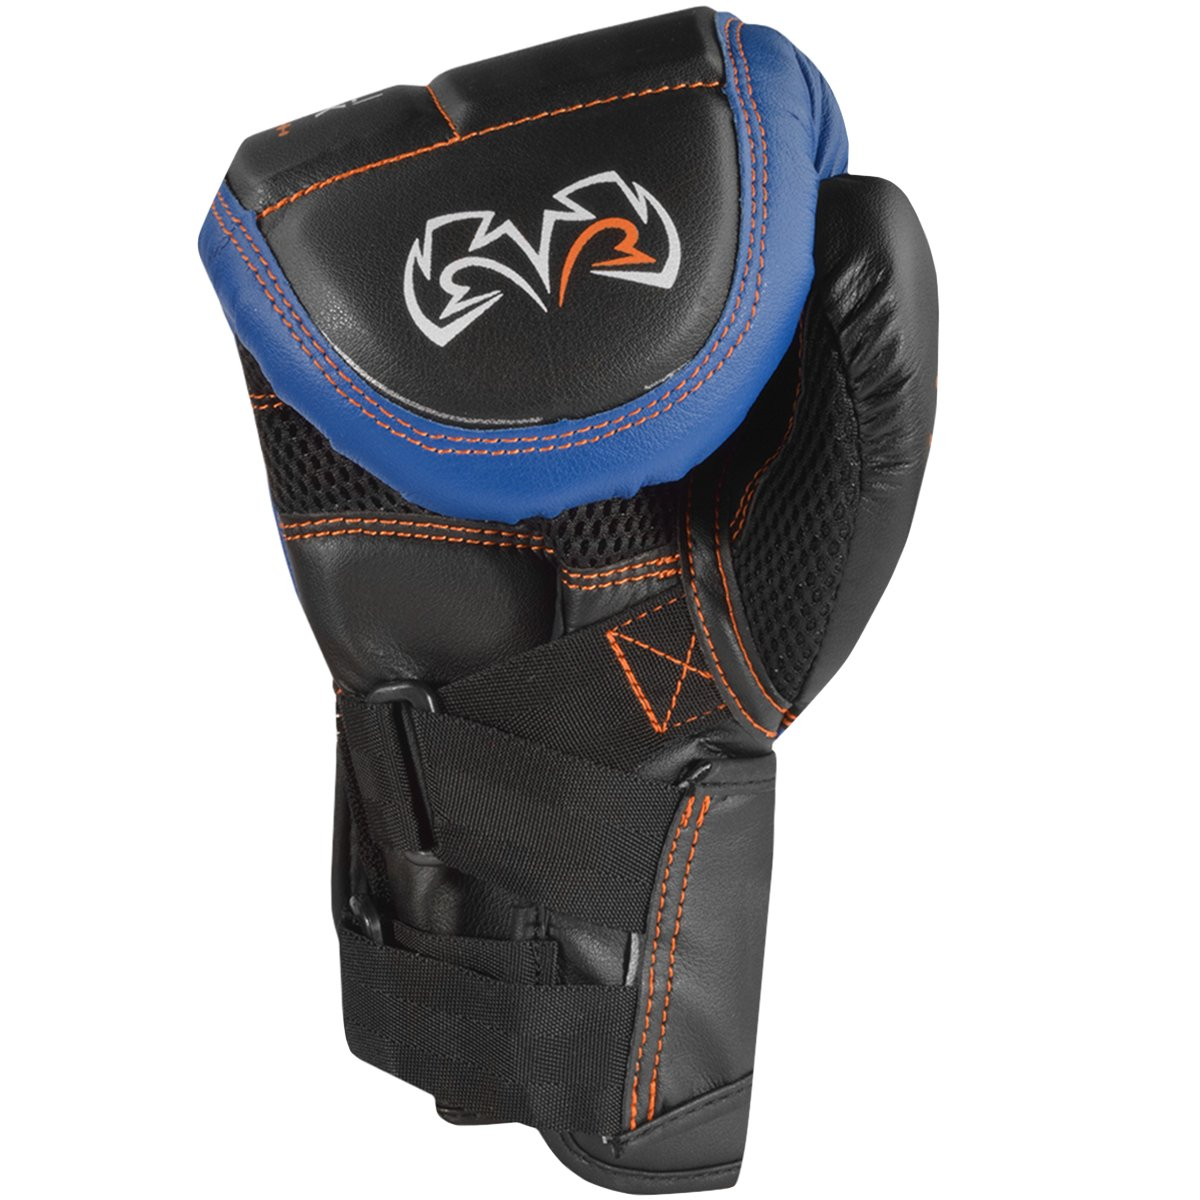 RIVAL BOXING GLOVES (RB10 INTELLI-SHOCK BAG GLOVES) (BLACK/BLUE, MEDIUM) by Rival (Image #2)